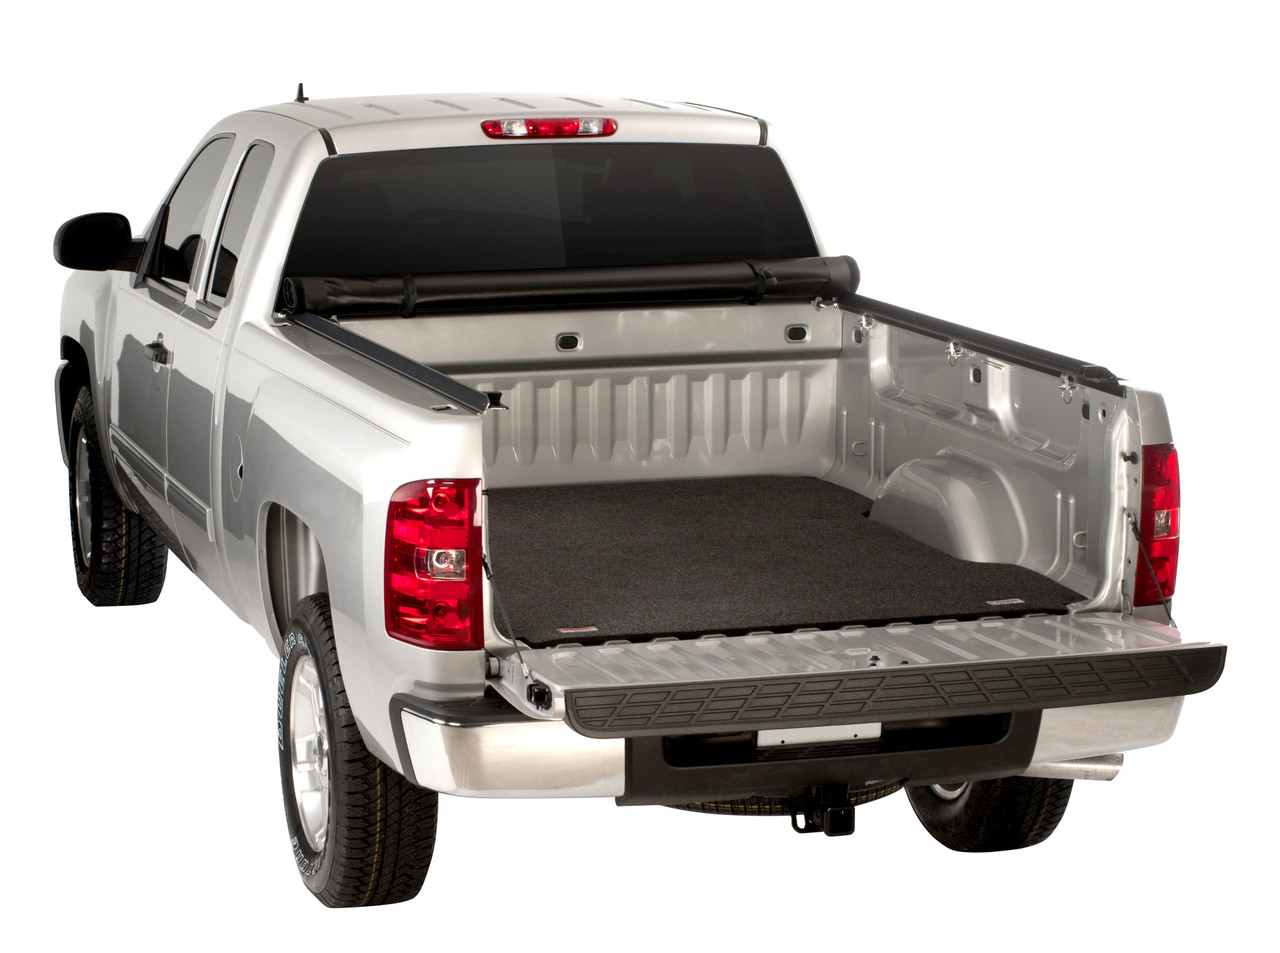 Access 25050229 Bed Mat for Toyota Tundra Long Bed 2007-Up 8 Bed